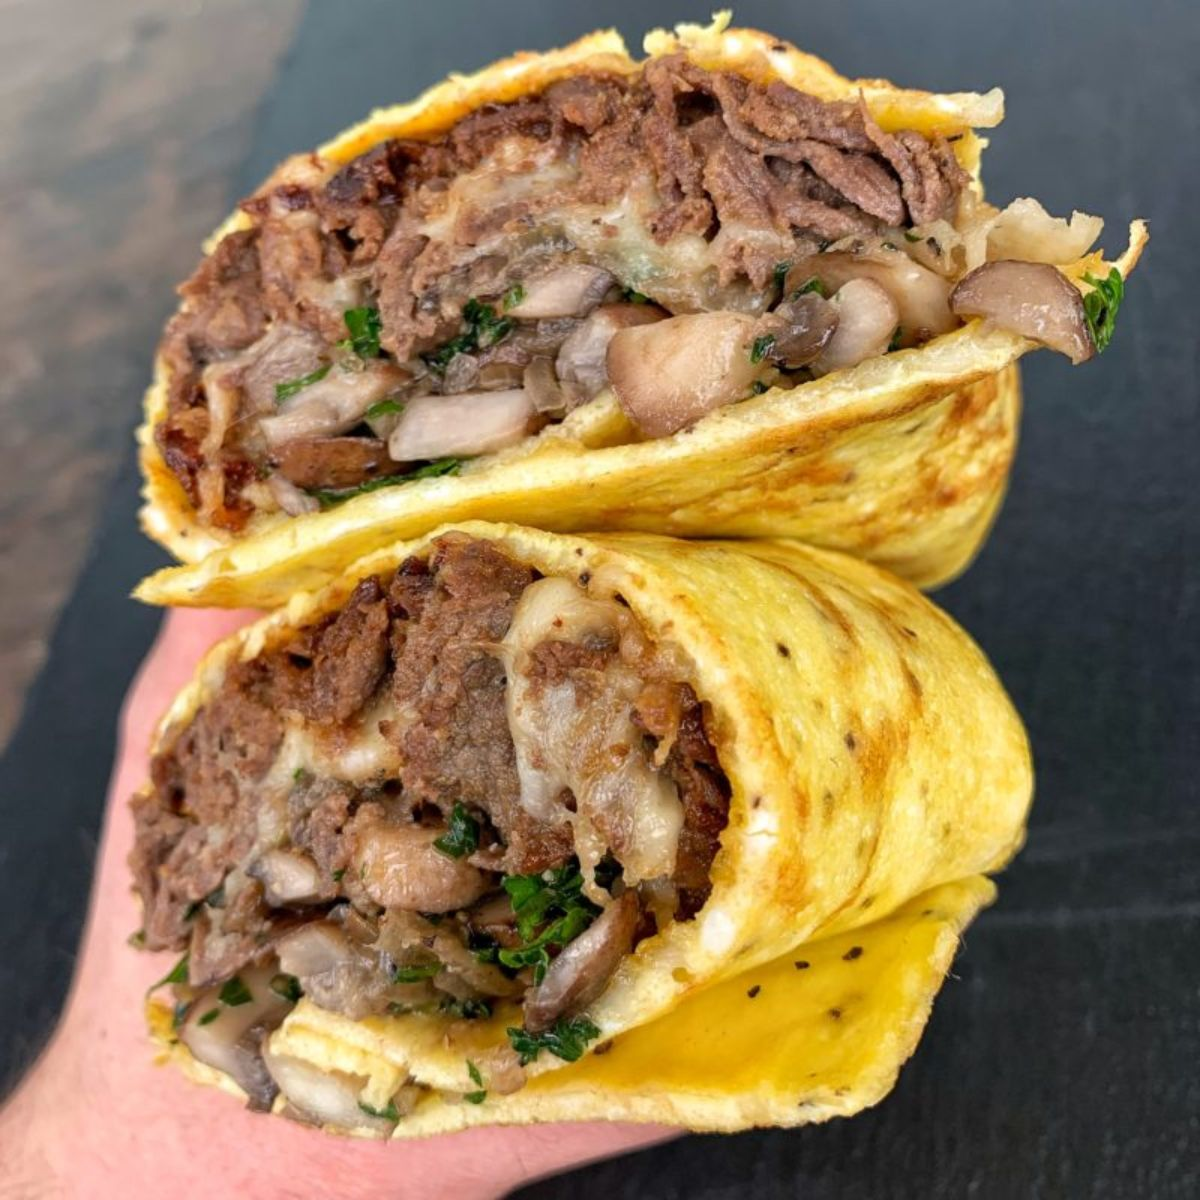 A hand holds two halves of an egg burrito filled with steak and vegetable mix